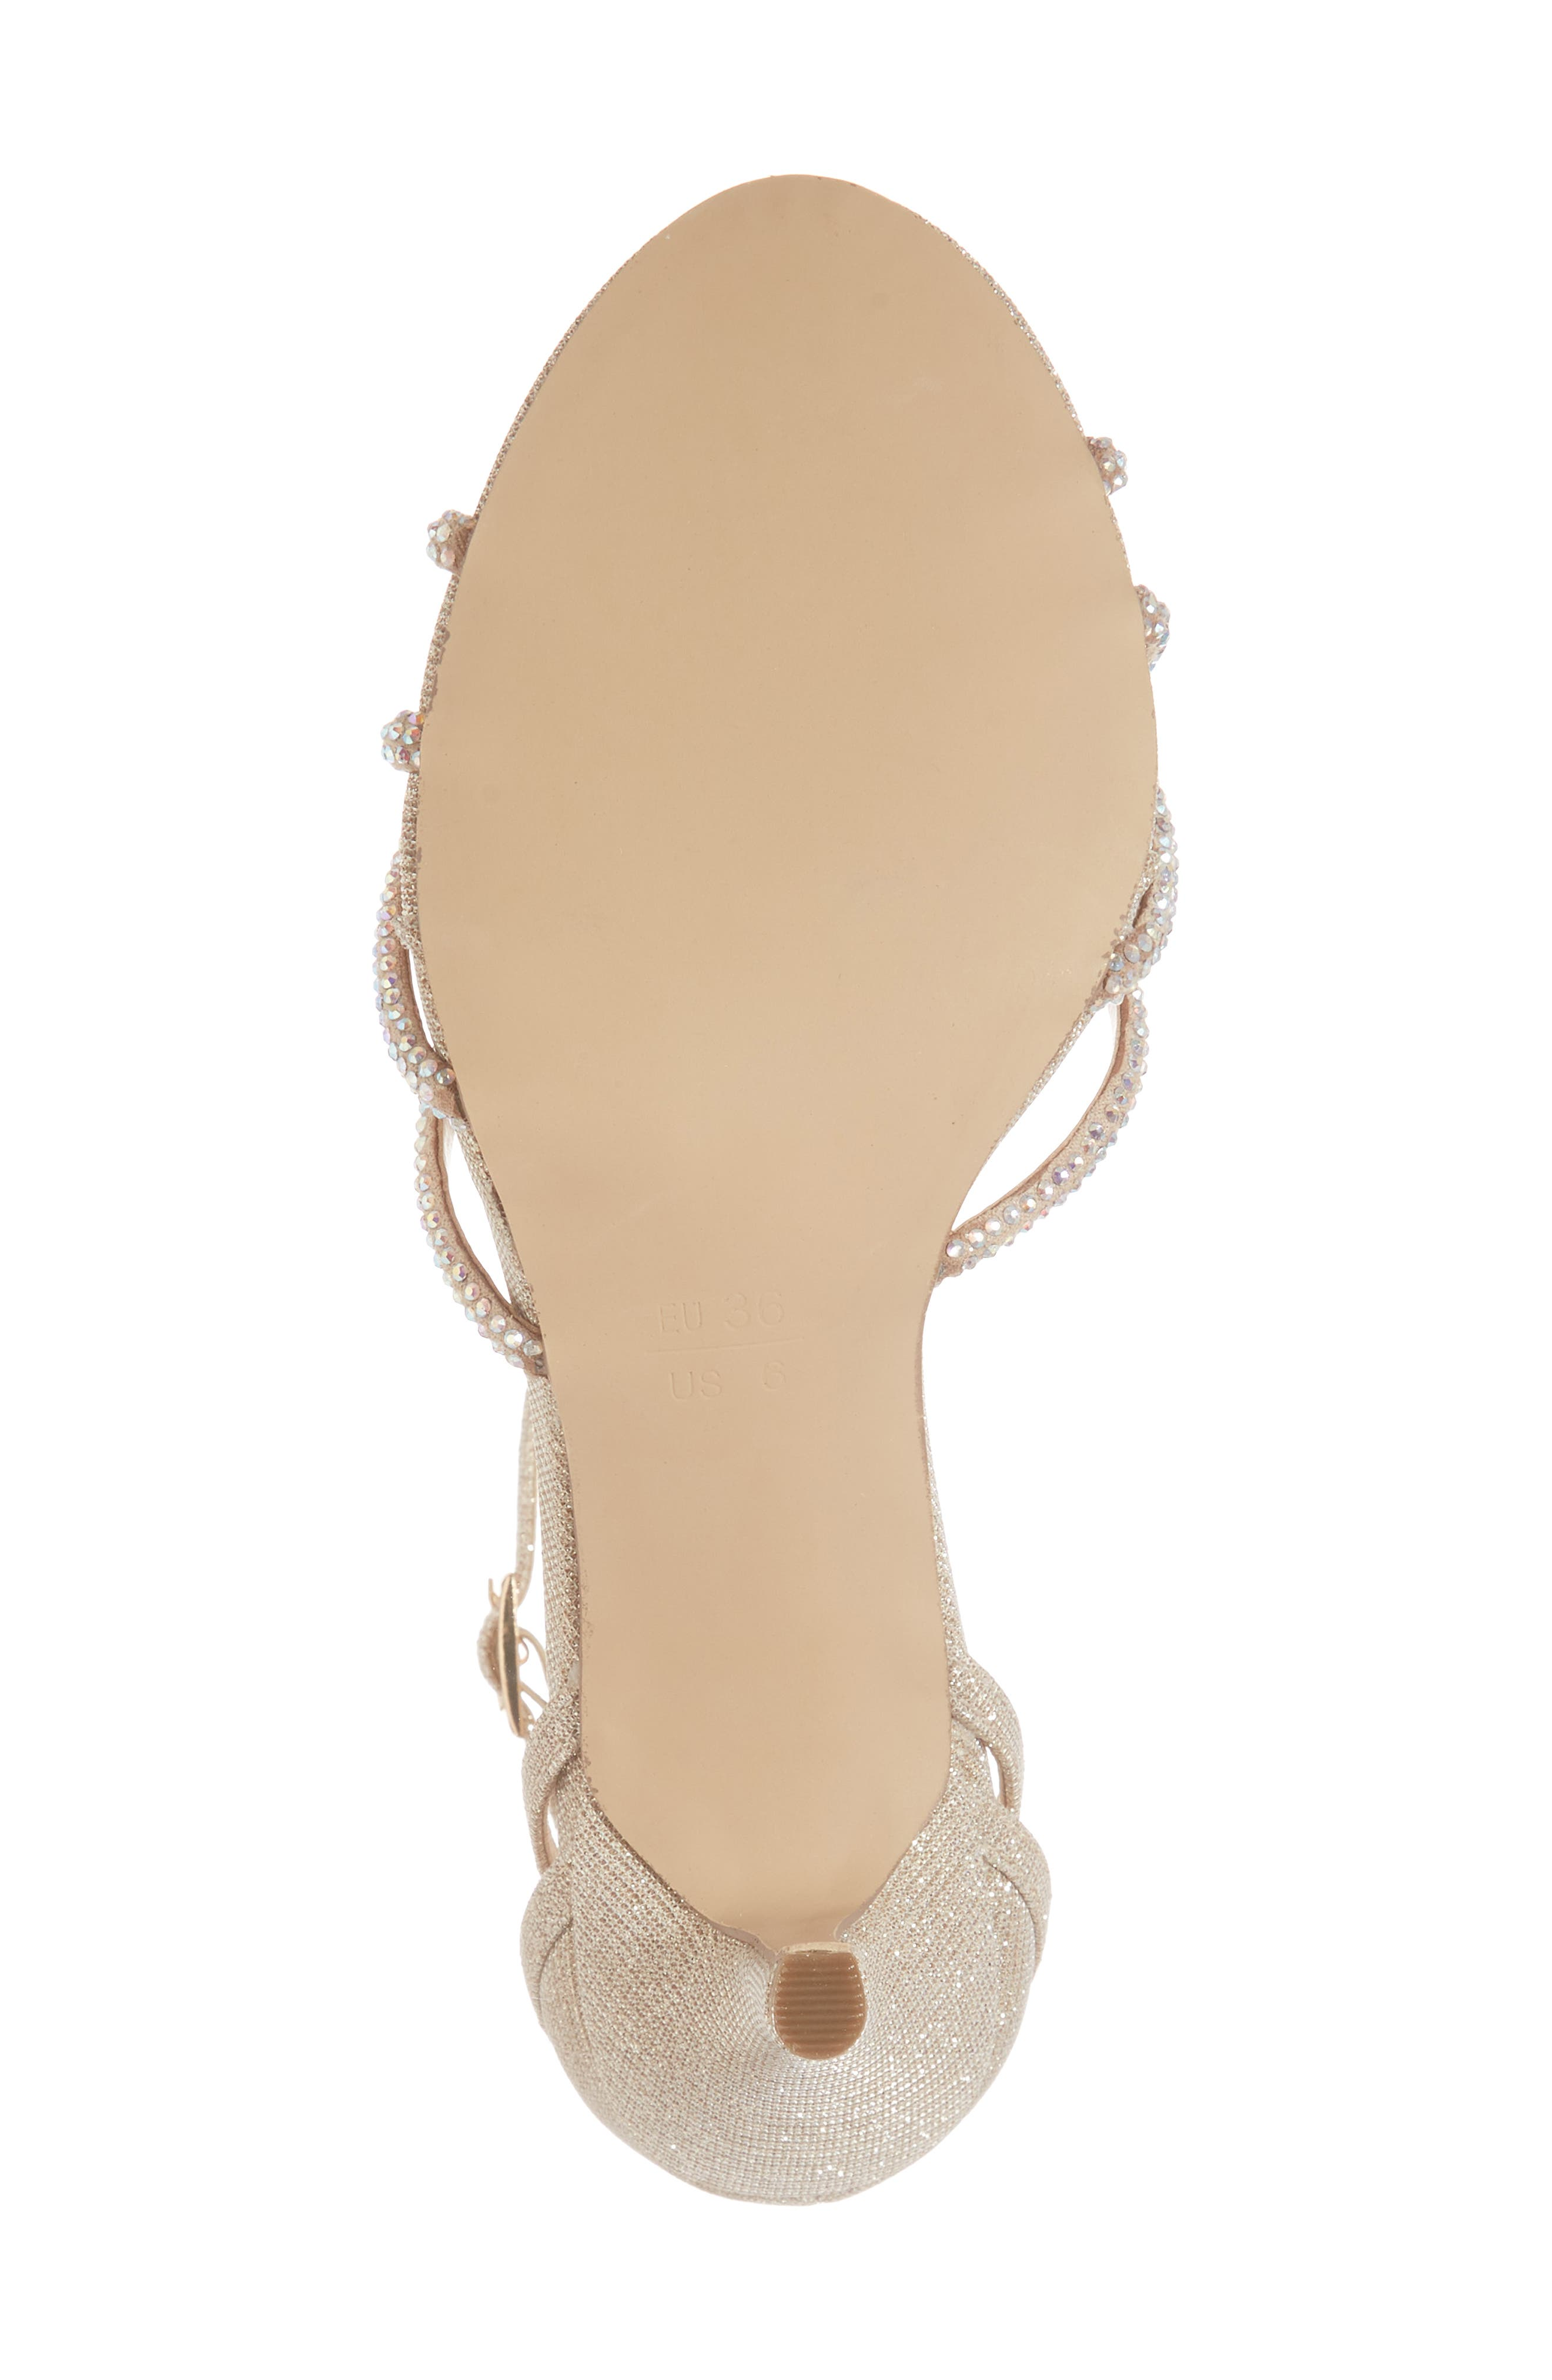 Majesty Sandal,                             Alternate thumbnail 6, color,                             Champagne Fabric